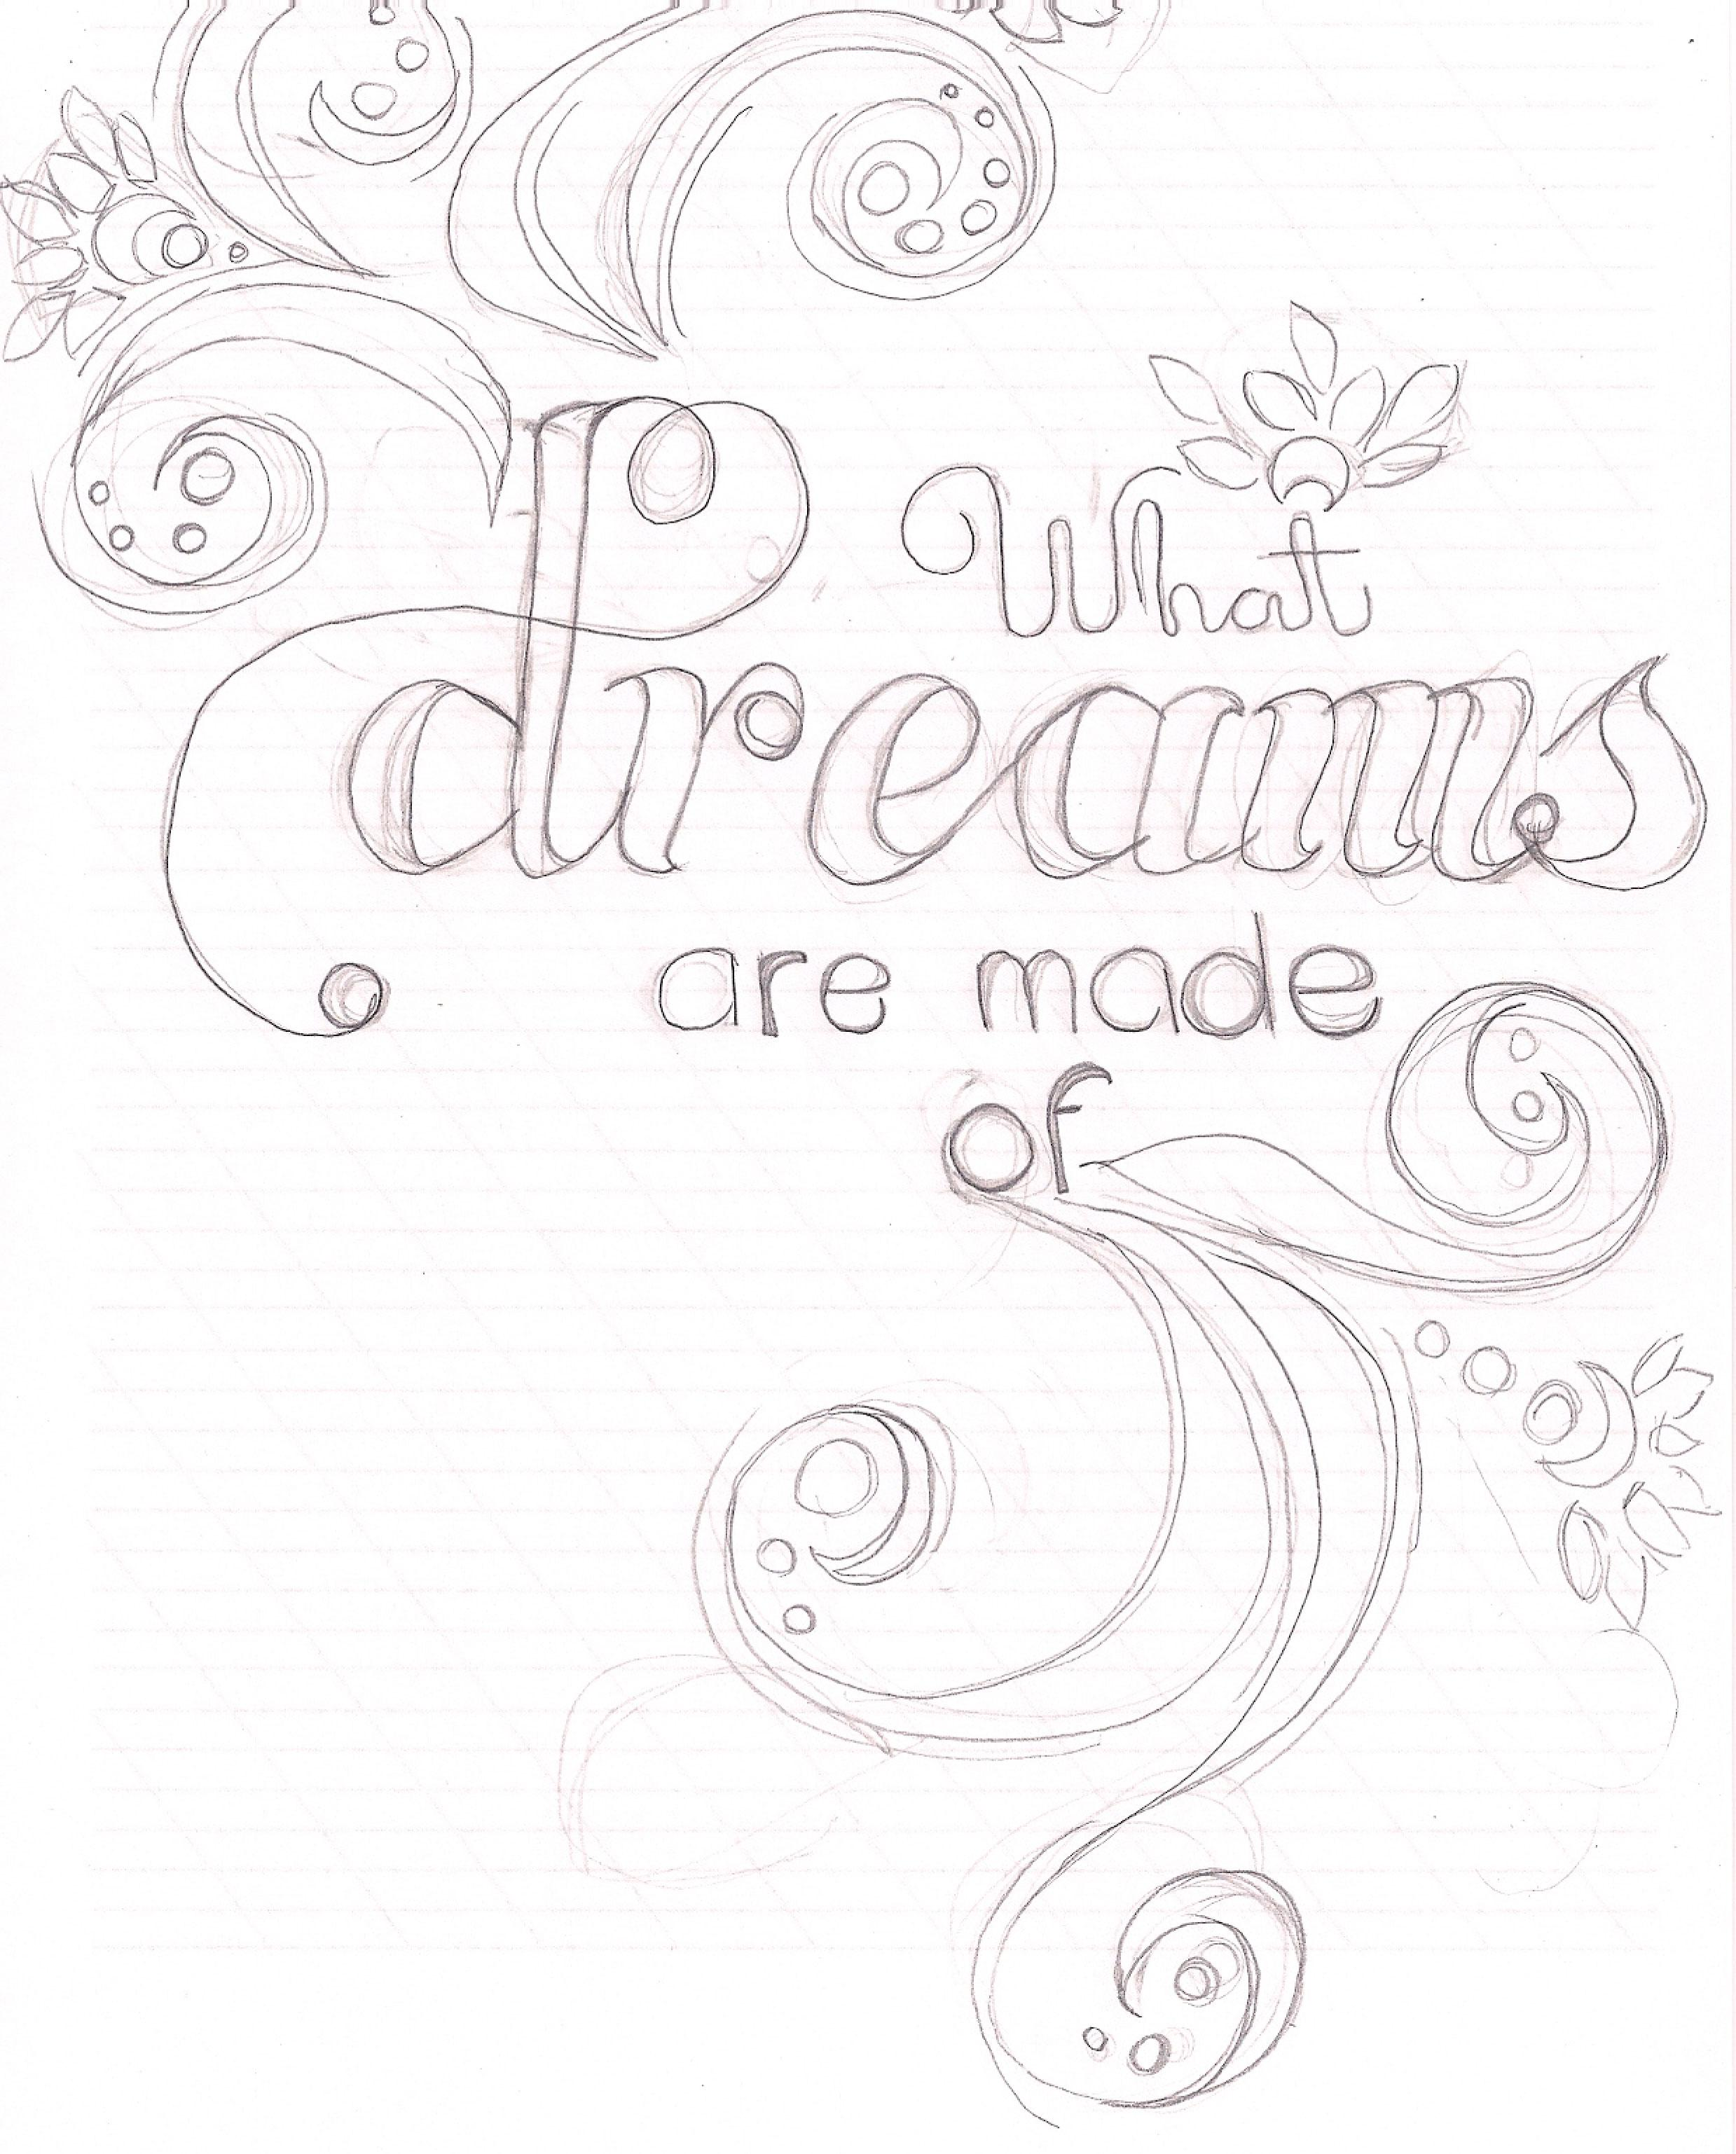 What dreams are made of - image 5 - student project